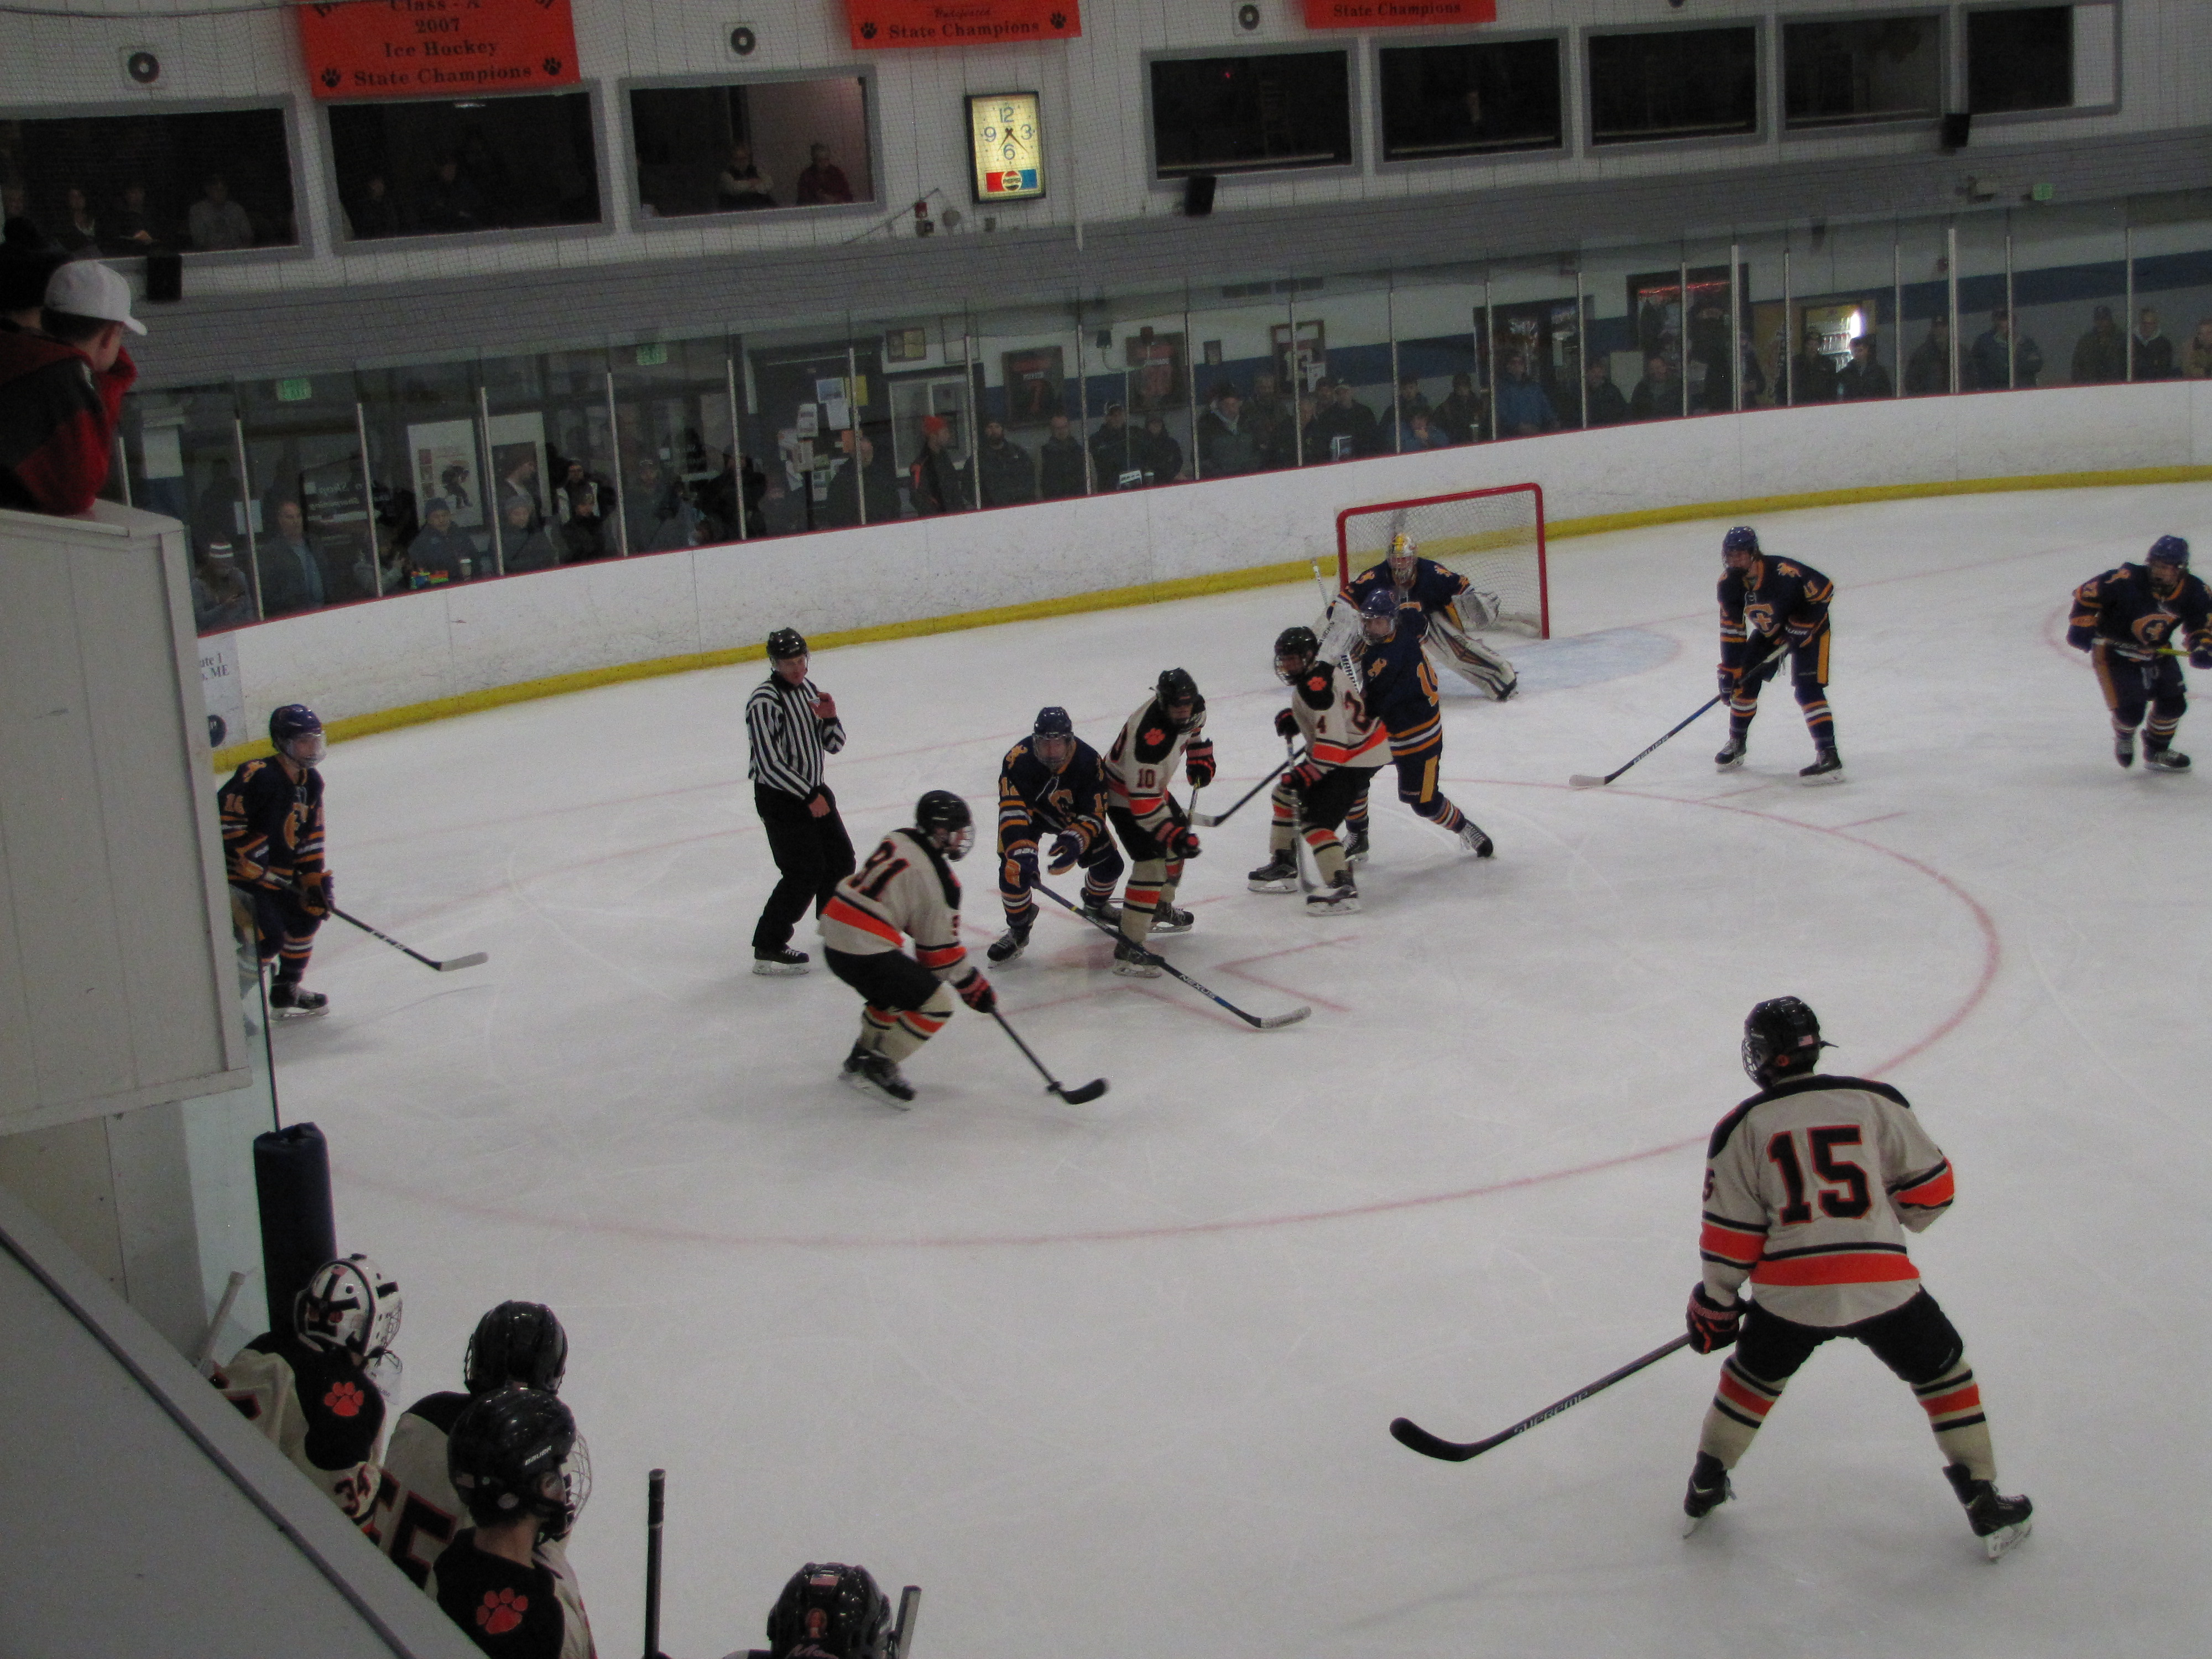 TAYLOR MORRISON/JOURNAL TRIBUNEThe Biddeford High School varsity ice hockey team face Cheverus at home, Tuesday, Dec. 20, 2016. Biddeford won 3-2 and earned every point through 45 contentious minutes at Biddeford Ice Arena.